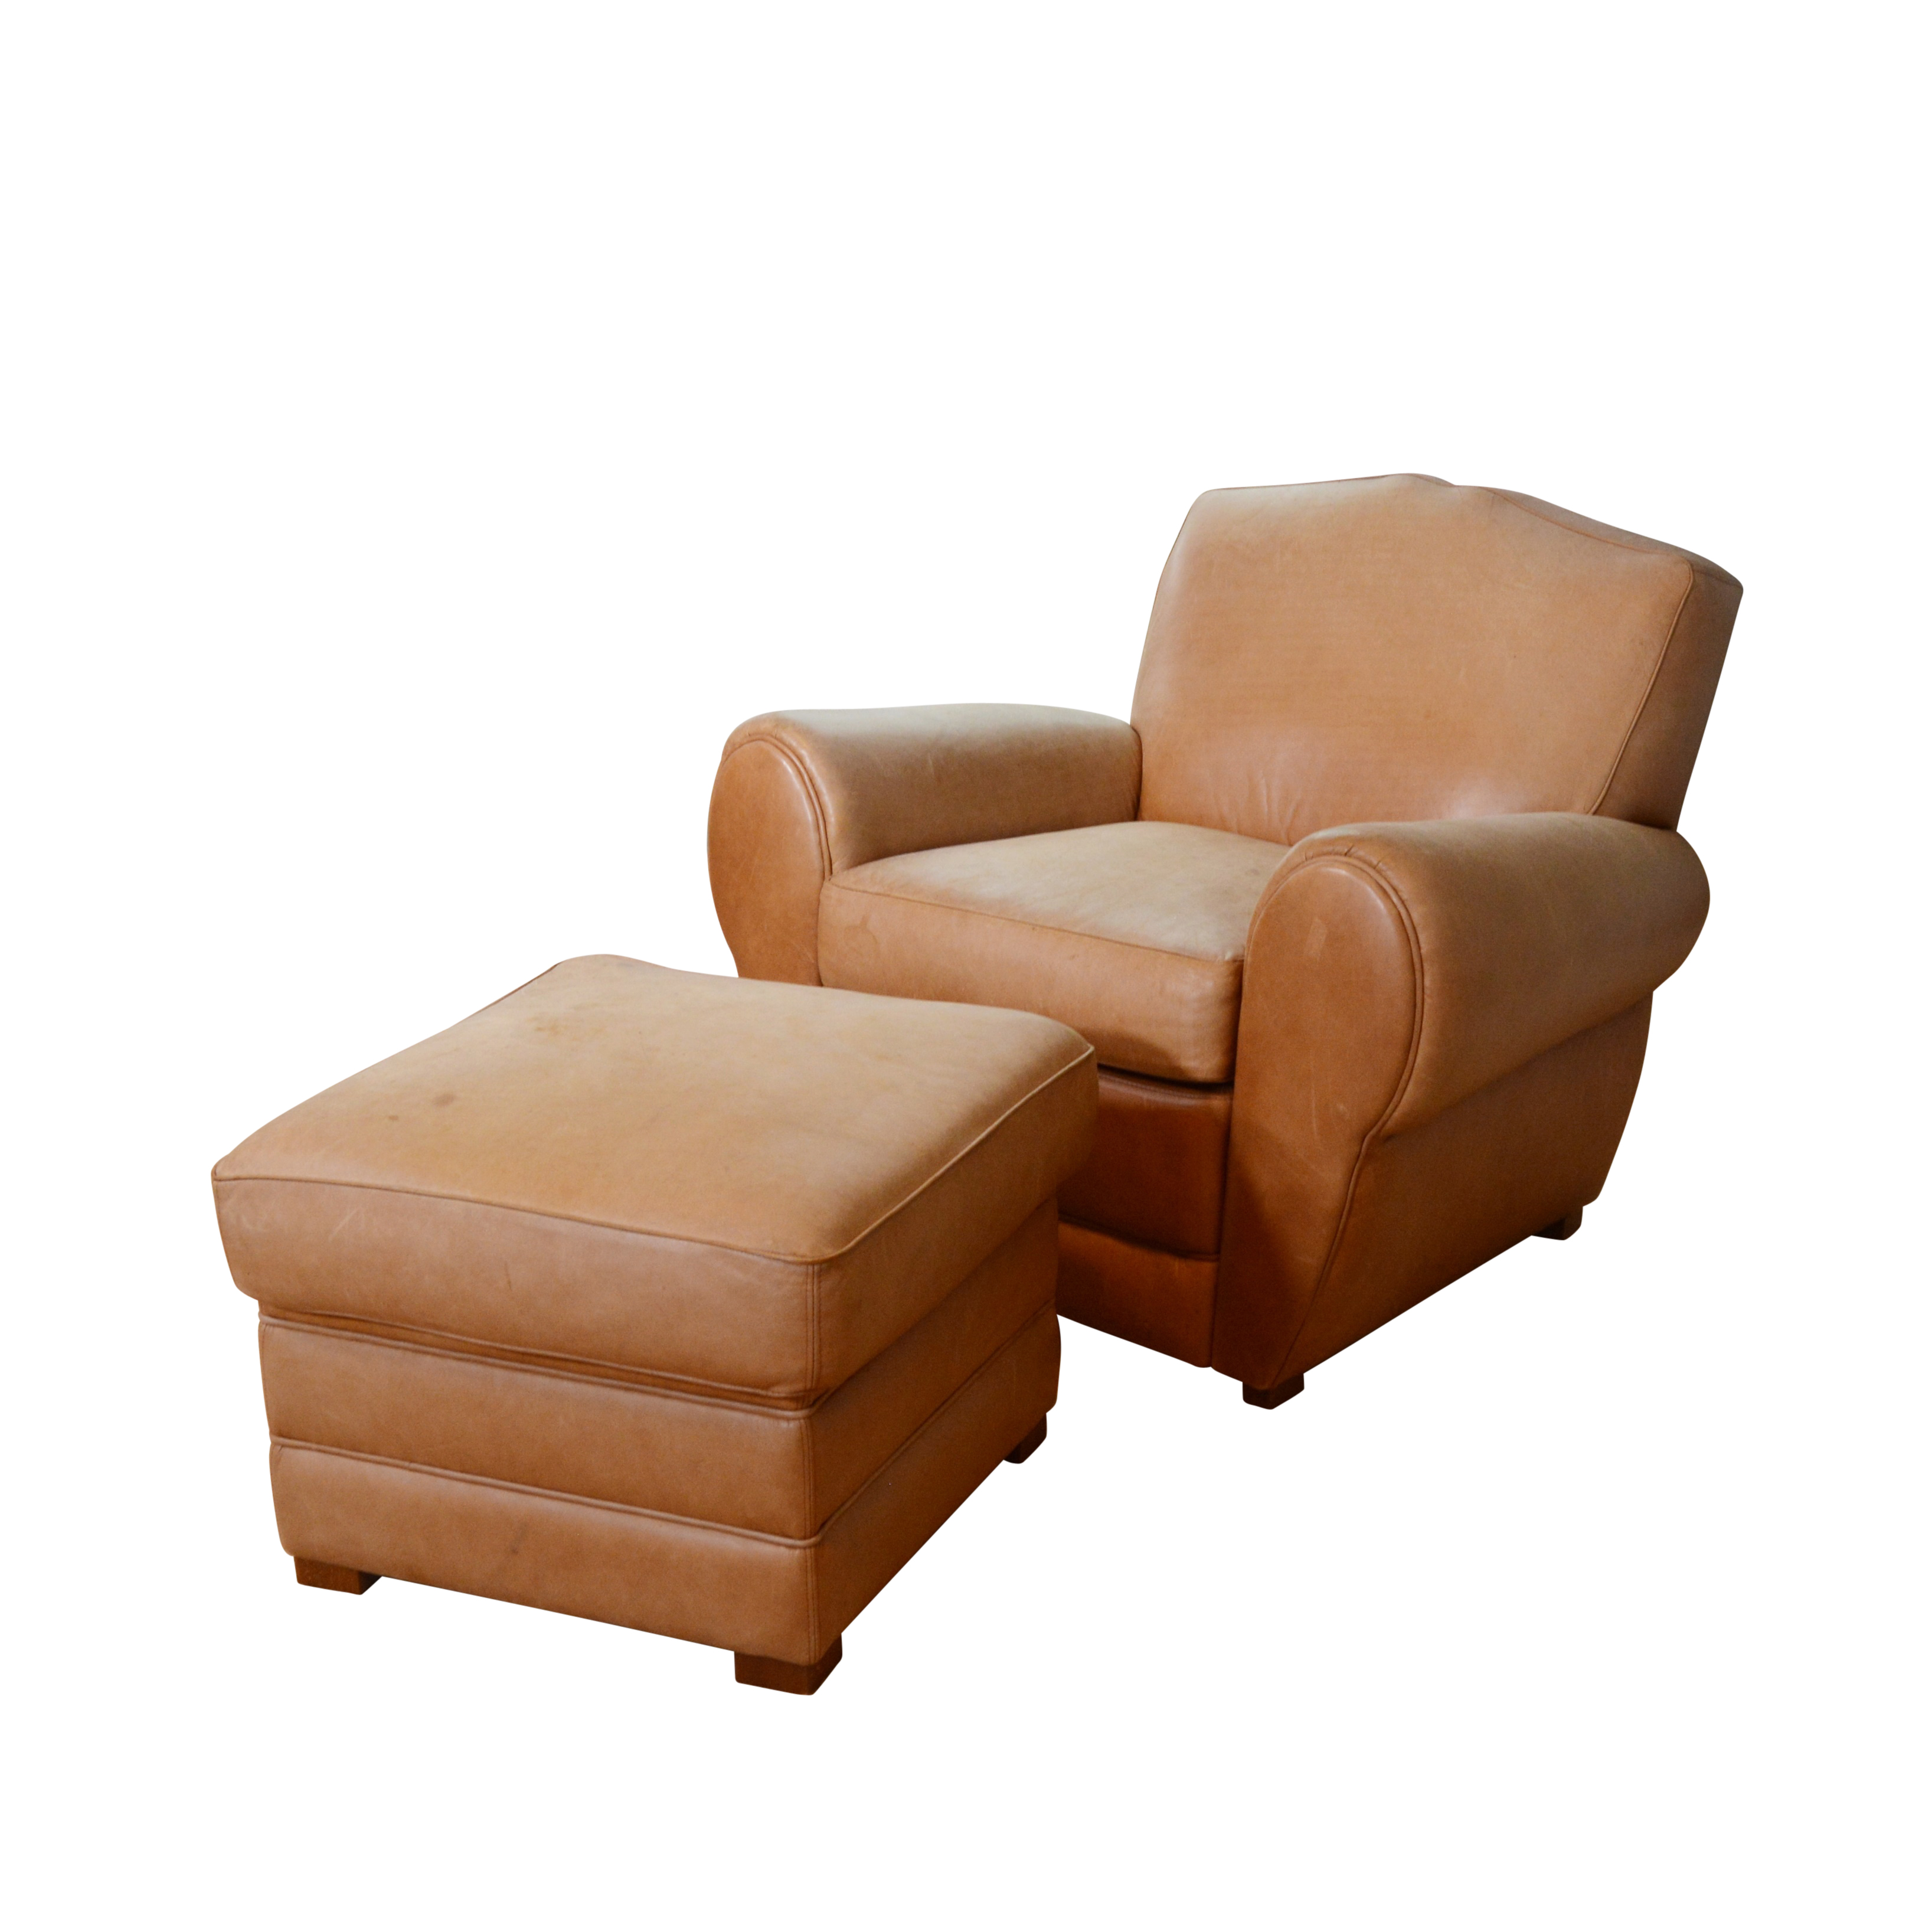 lounge chair leather sam moore grasshopper and ottoman late 20th century ebth